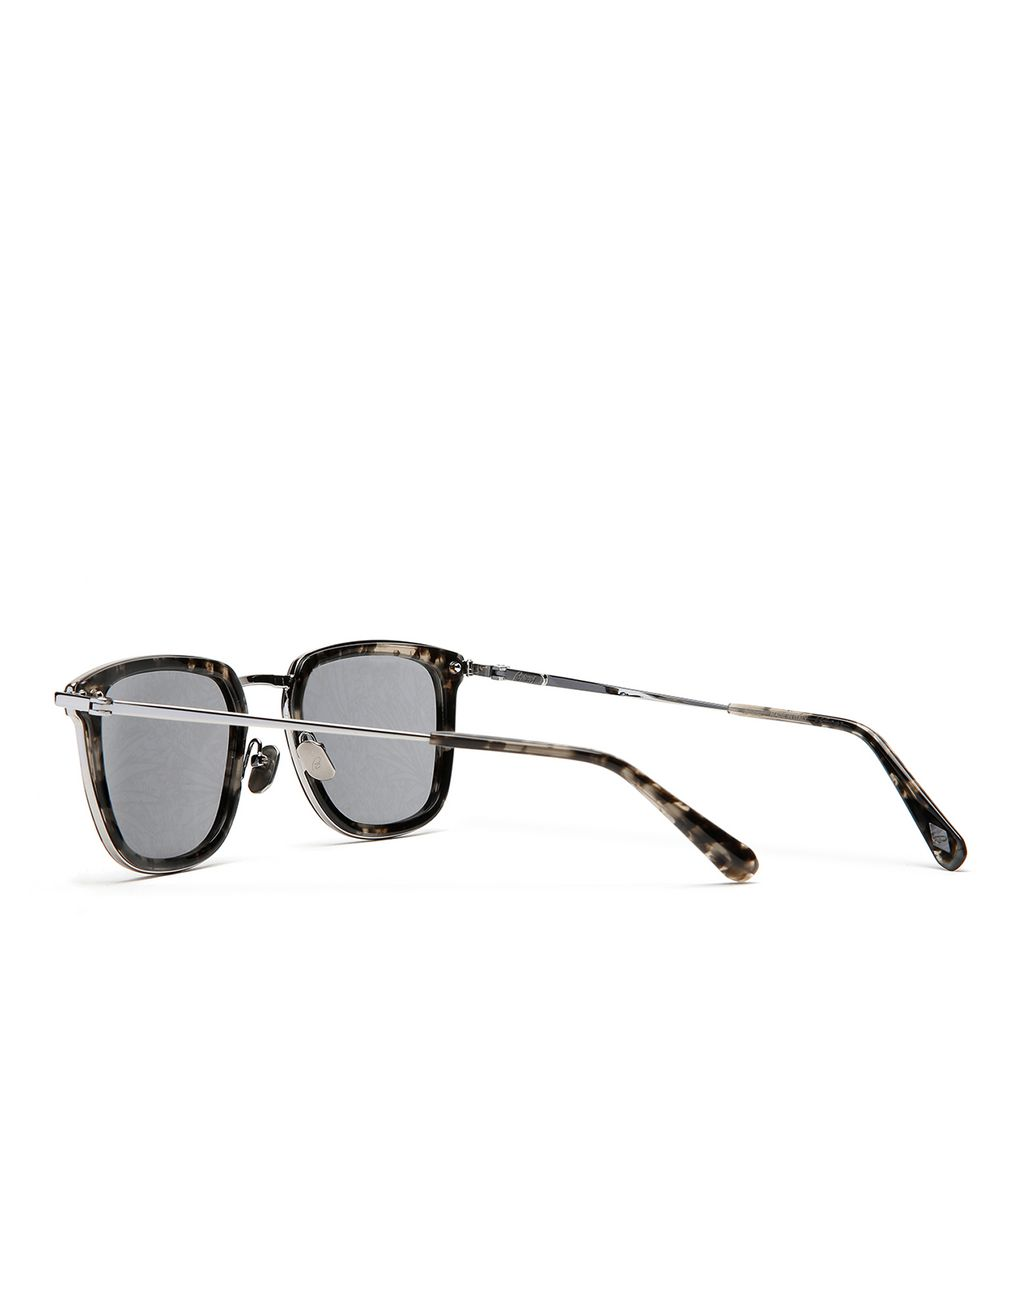 BRIONI Havana Grey Sunglasses with Jungle Concept Grey Lenses   Sunglasses Man d